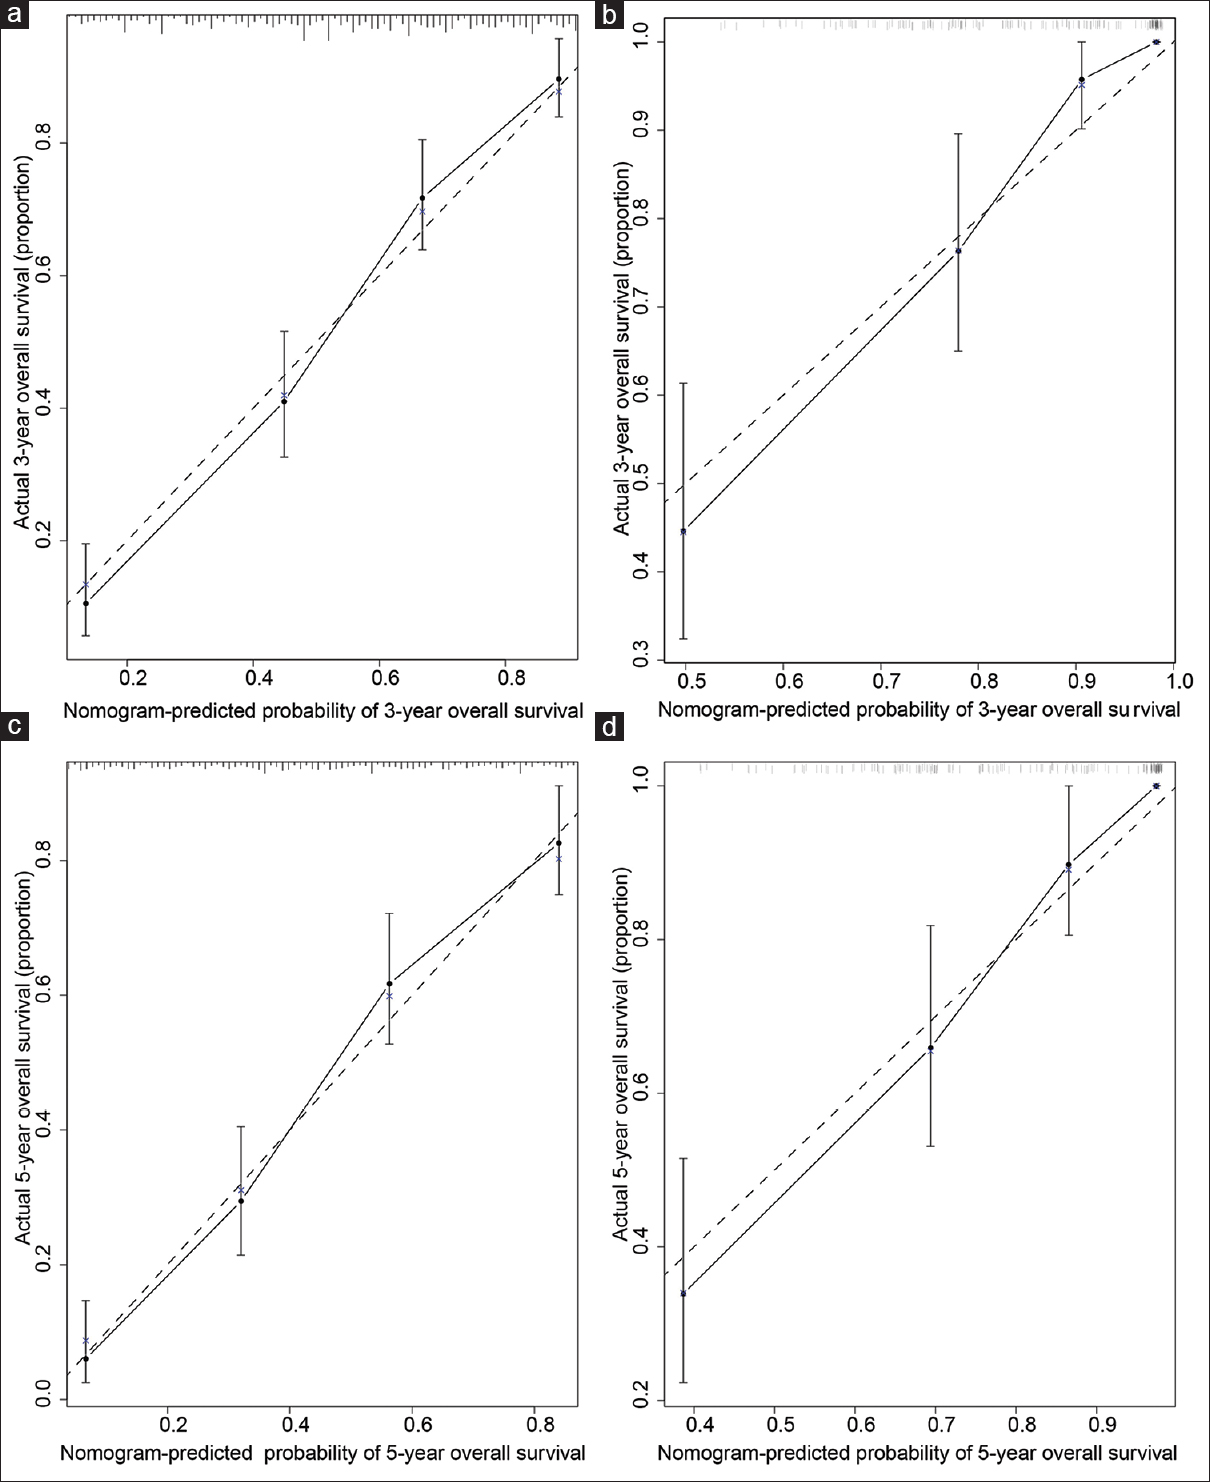 Figure 3: Calibration plots of the nomogram in the training set (a and c) and validation set (b and d). (a and b) Three-year overall survival and (c and d) 5-year overall survival. The <i>x</i>-axis represents the nomogram-predicted survival, and the <i>y</i>-axis represents actual survival and 95% CI measured by Kaplan–Meier analysis. The line represents the ideal reference line where predicted survival corresponds with the actual survival